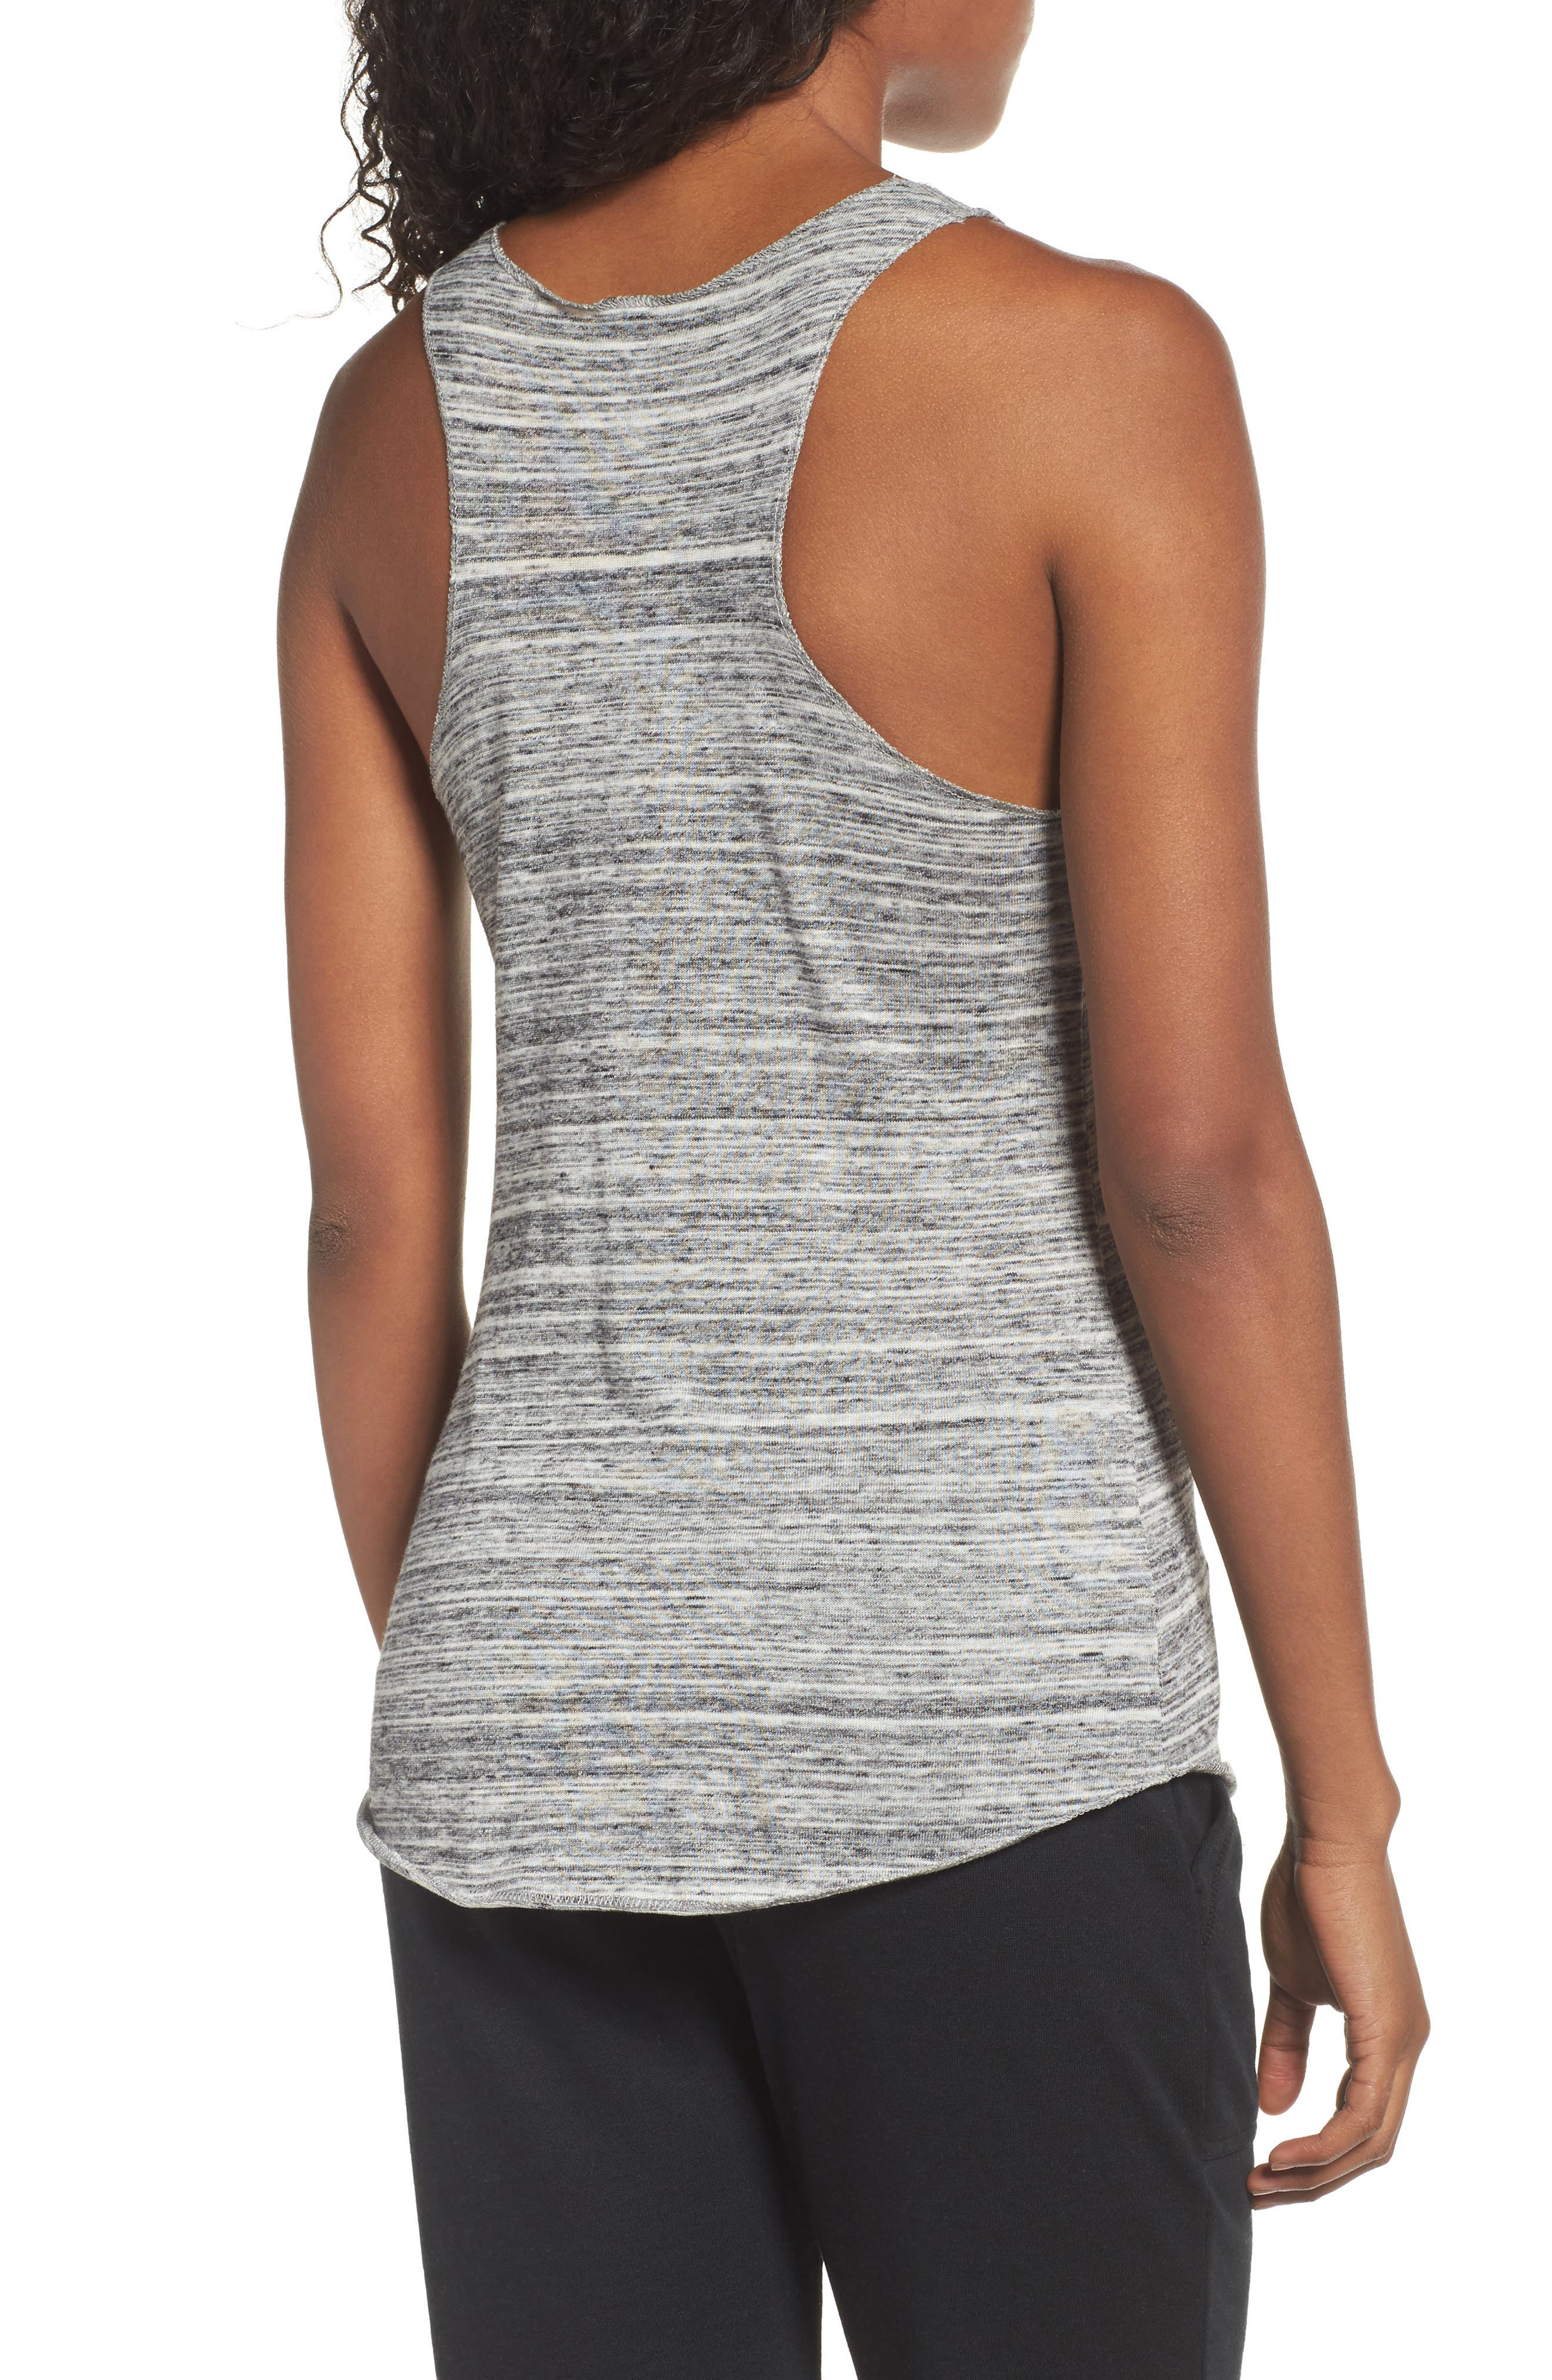 Meegs Racerback Tank,                             Alternate thumbnail 2, color,